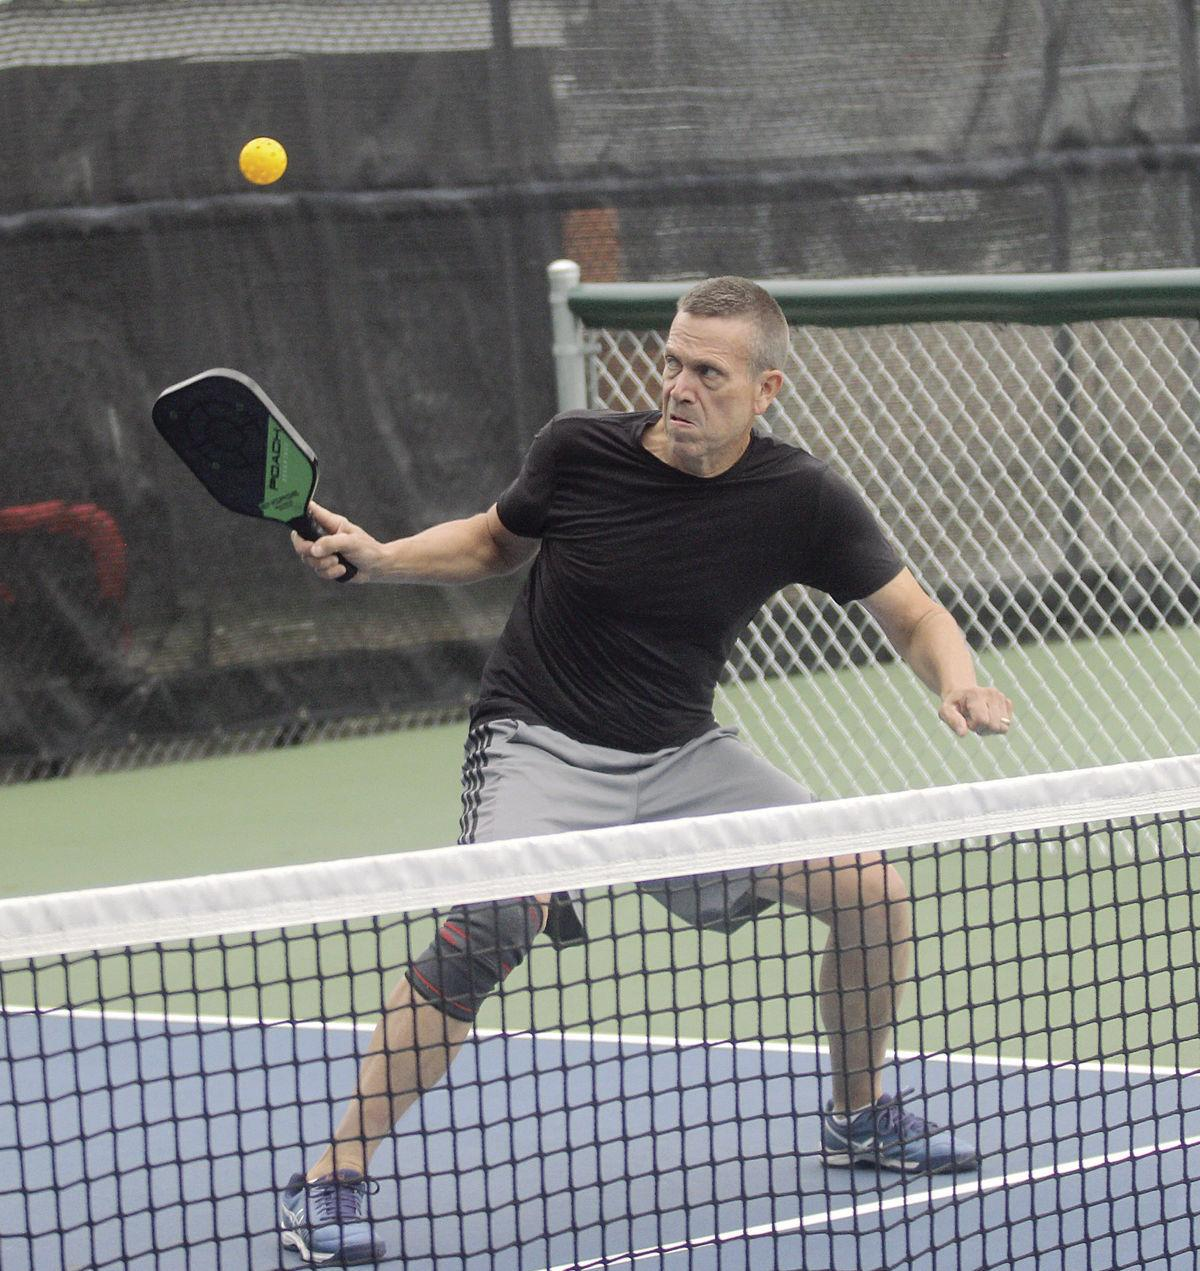 090919-ldn-pickleball4.jpg